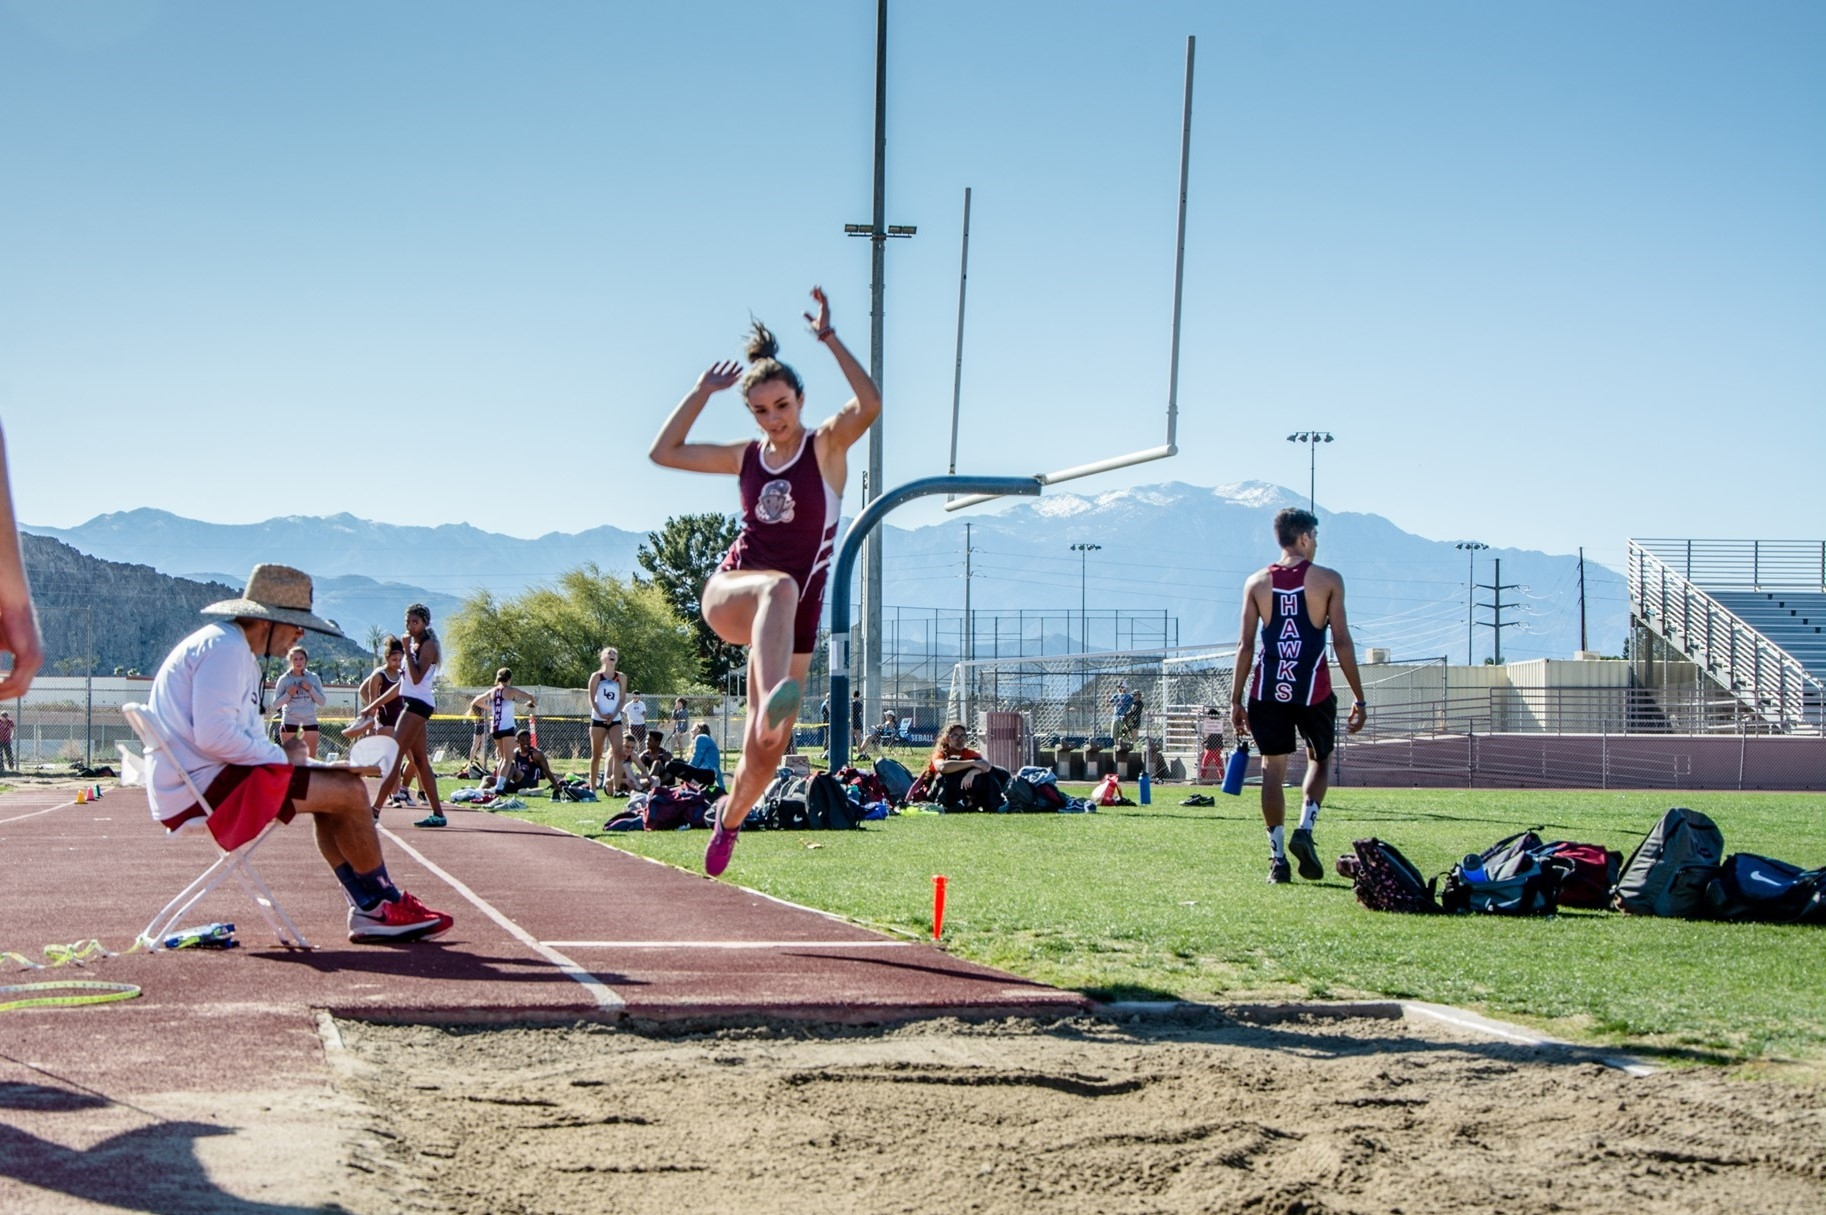 Lizbeth Arias, 2020 Edison Scholar and Rancho Mirage High School senior, is on varsity teams for track, tennis and soccer.